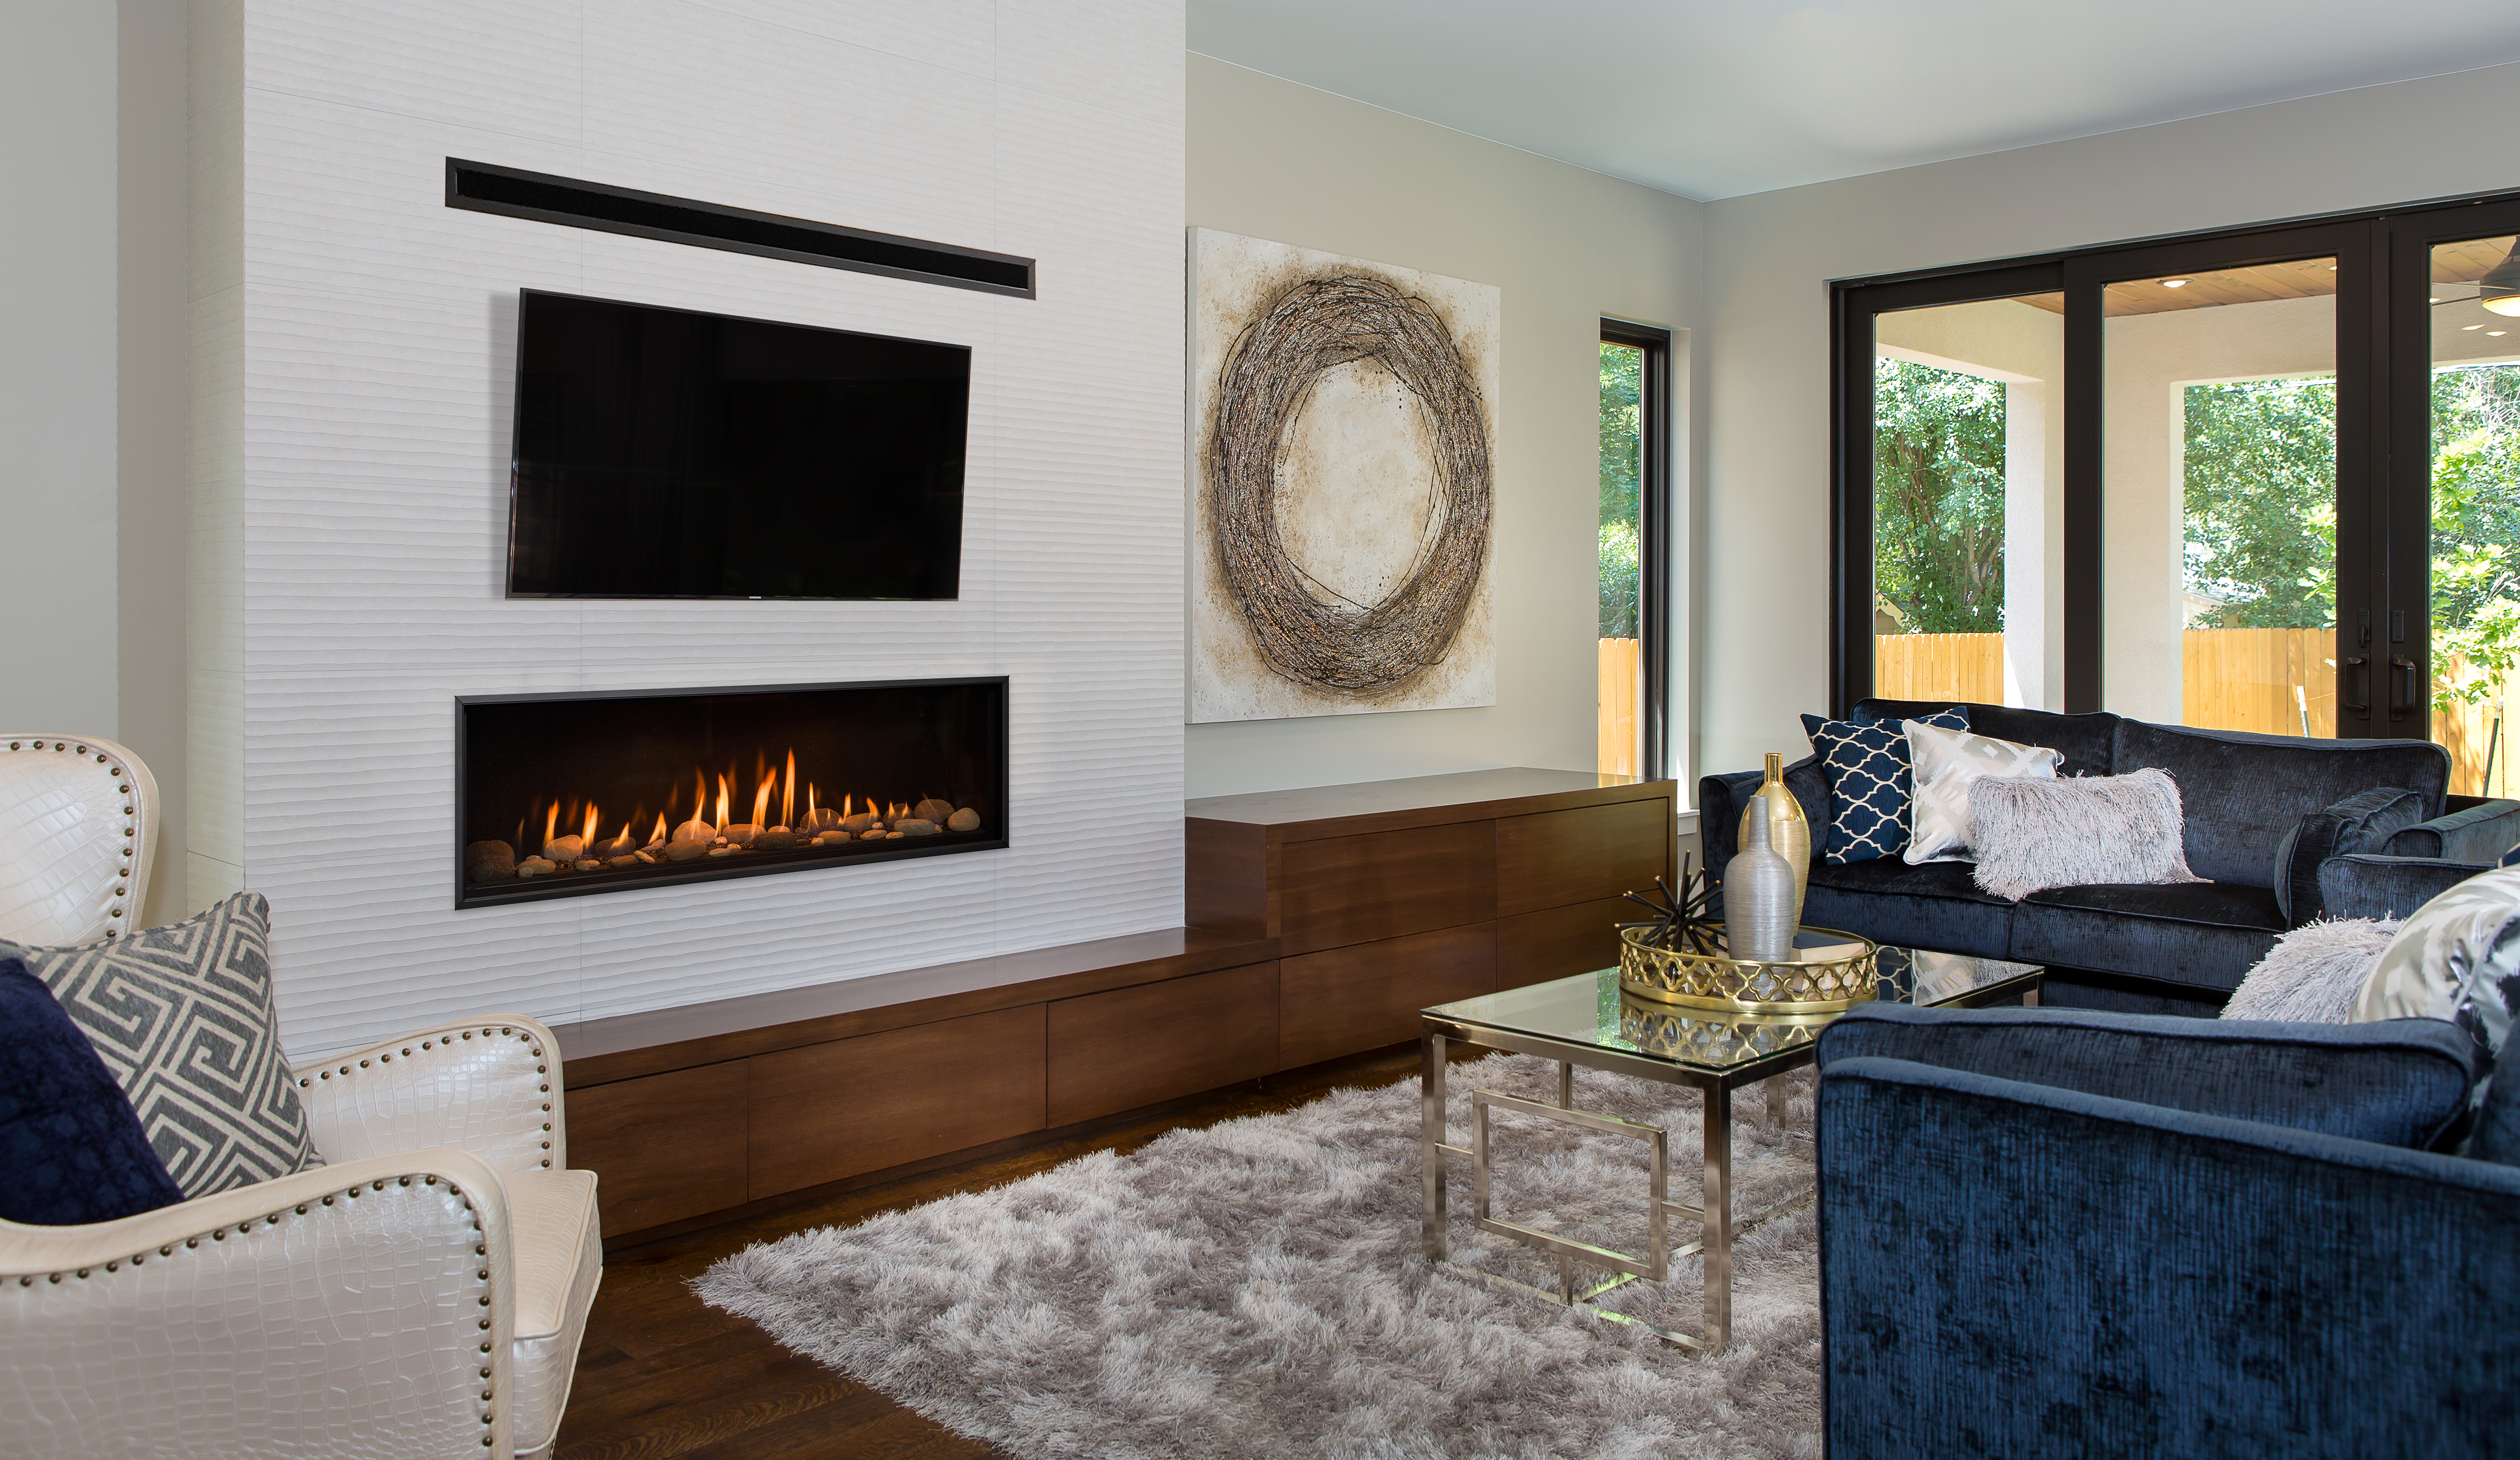 Another Image of the modern Callaway 50 gas fireplace made by Kozy Heat featuring a modern linear design.